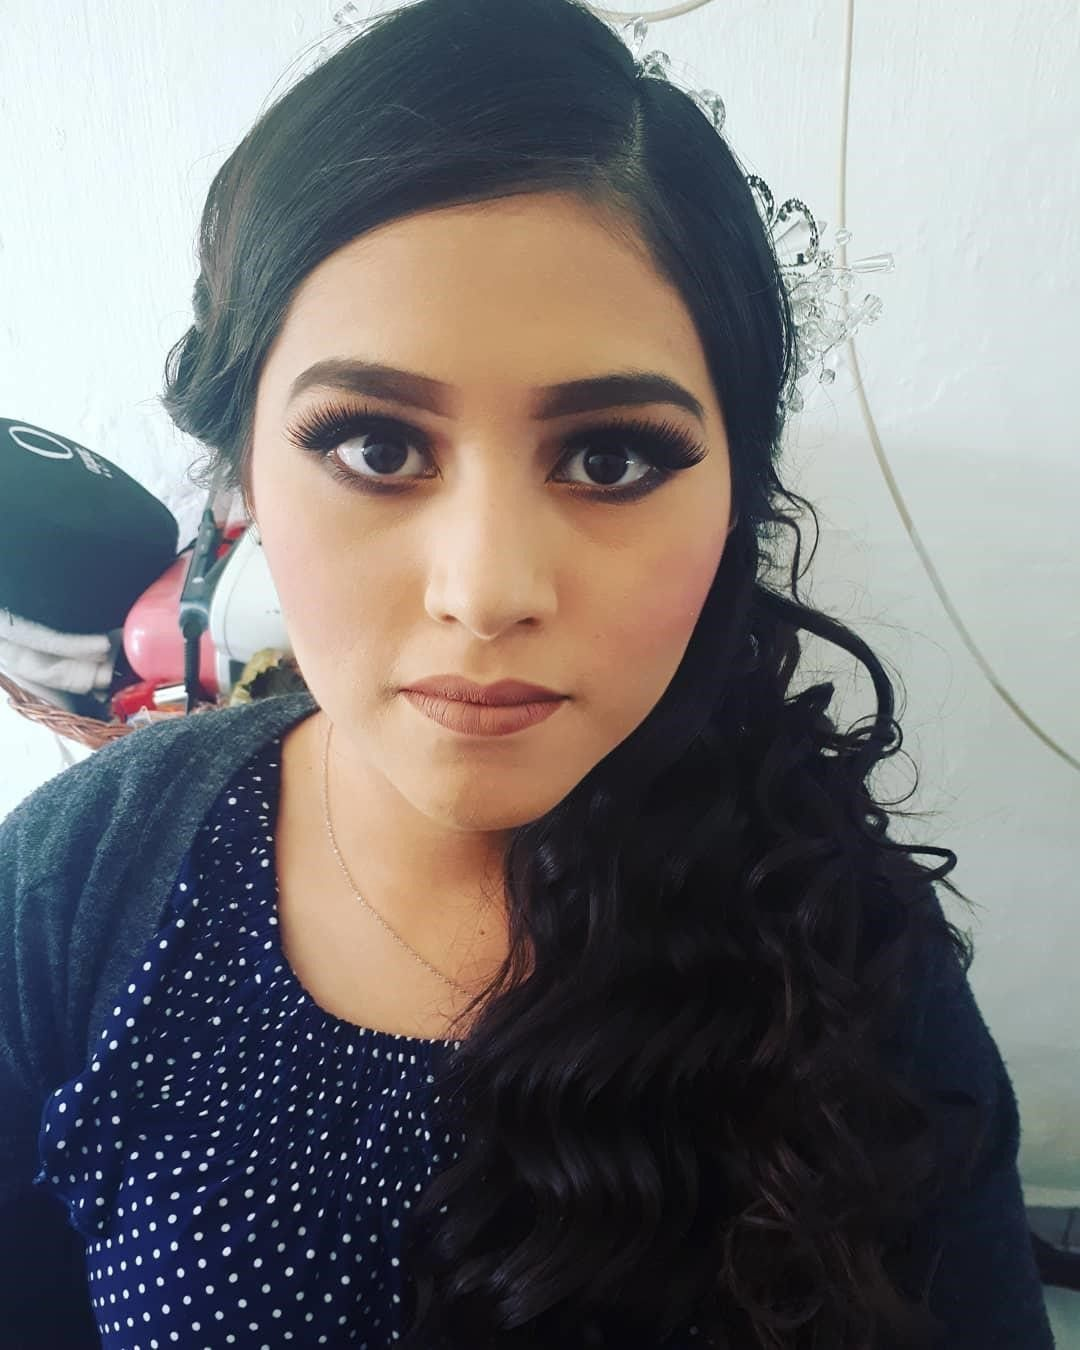 I Am A Professional Makeup Artist And Hairstylist Based In San